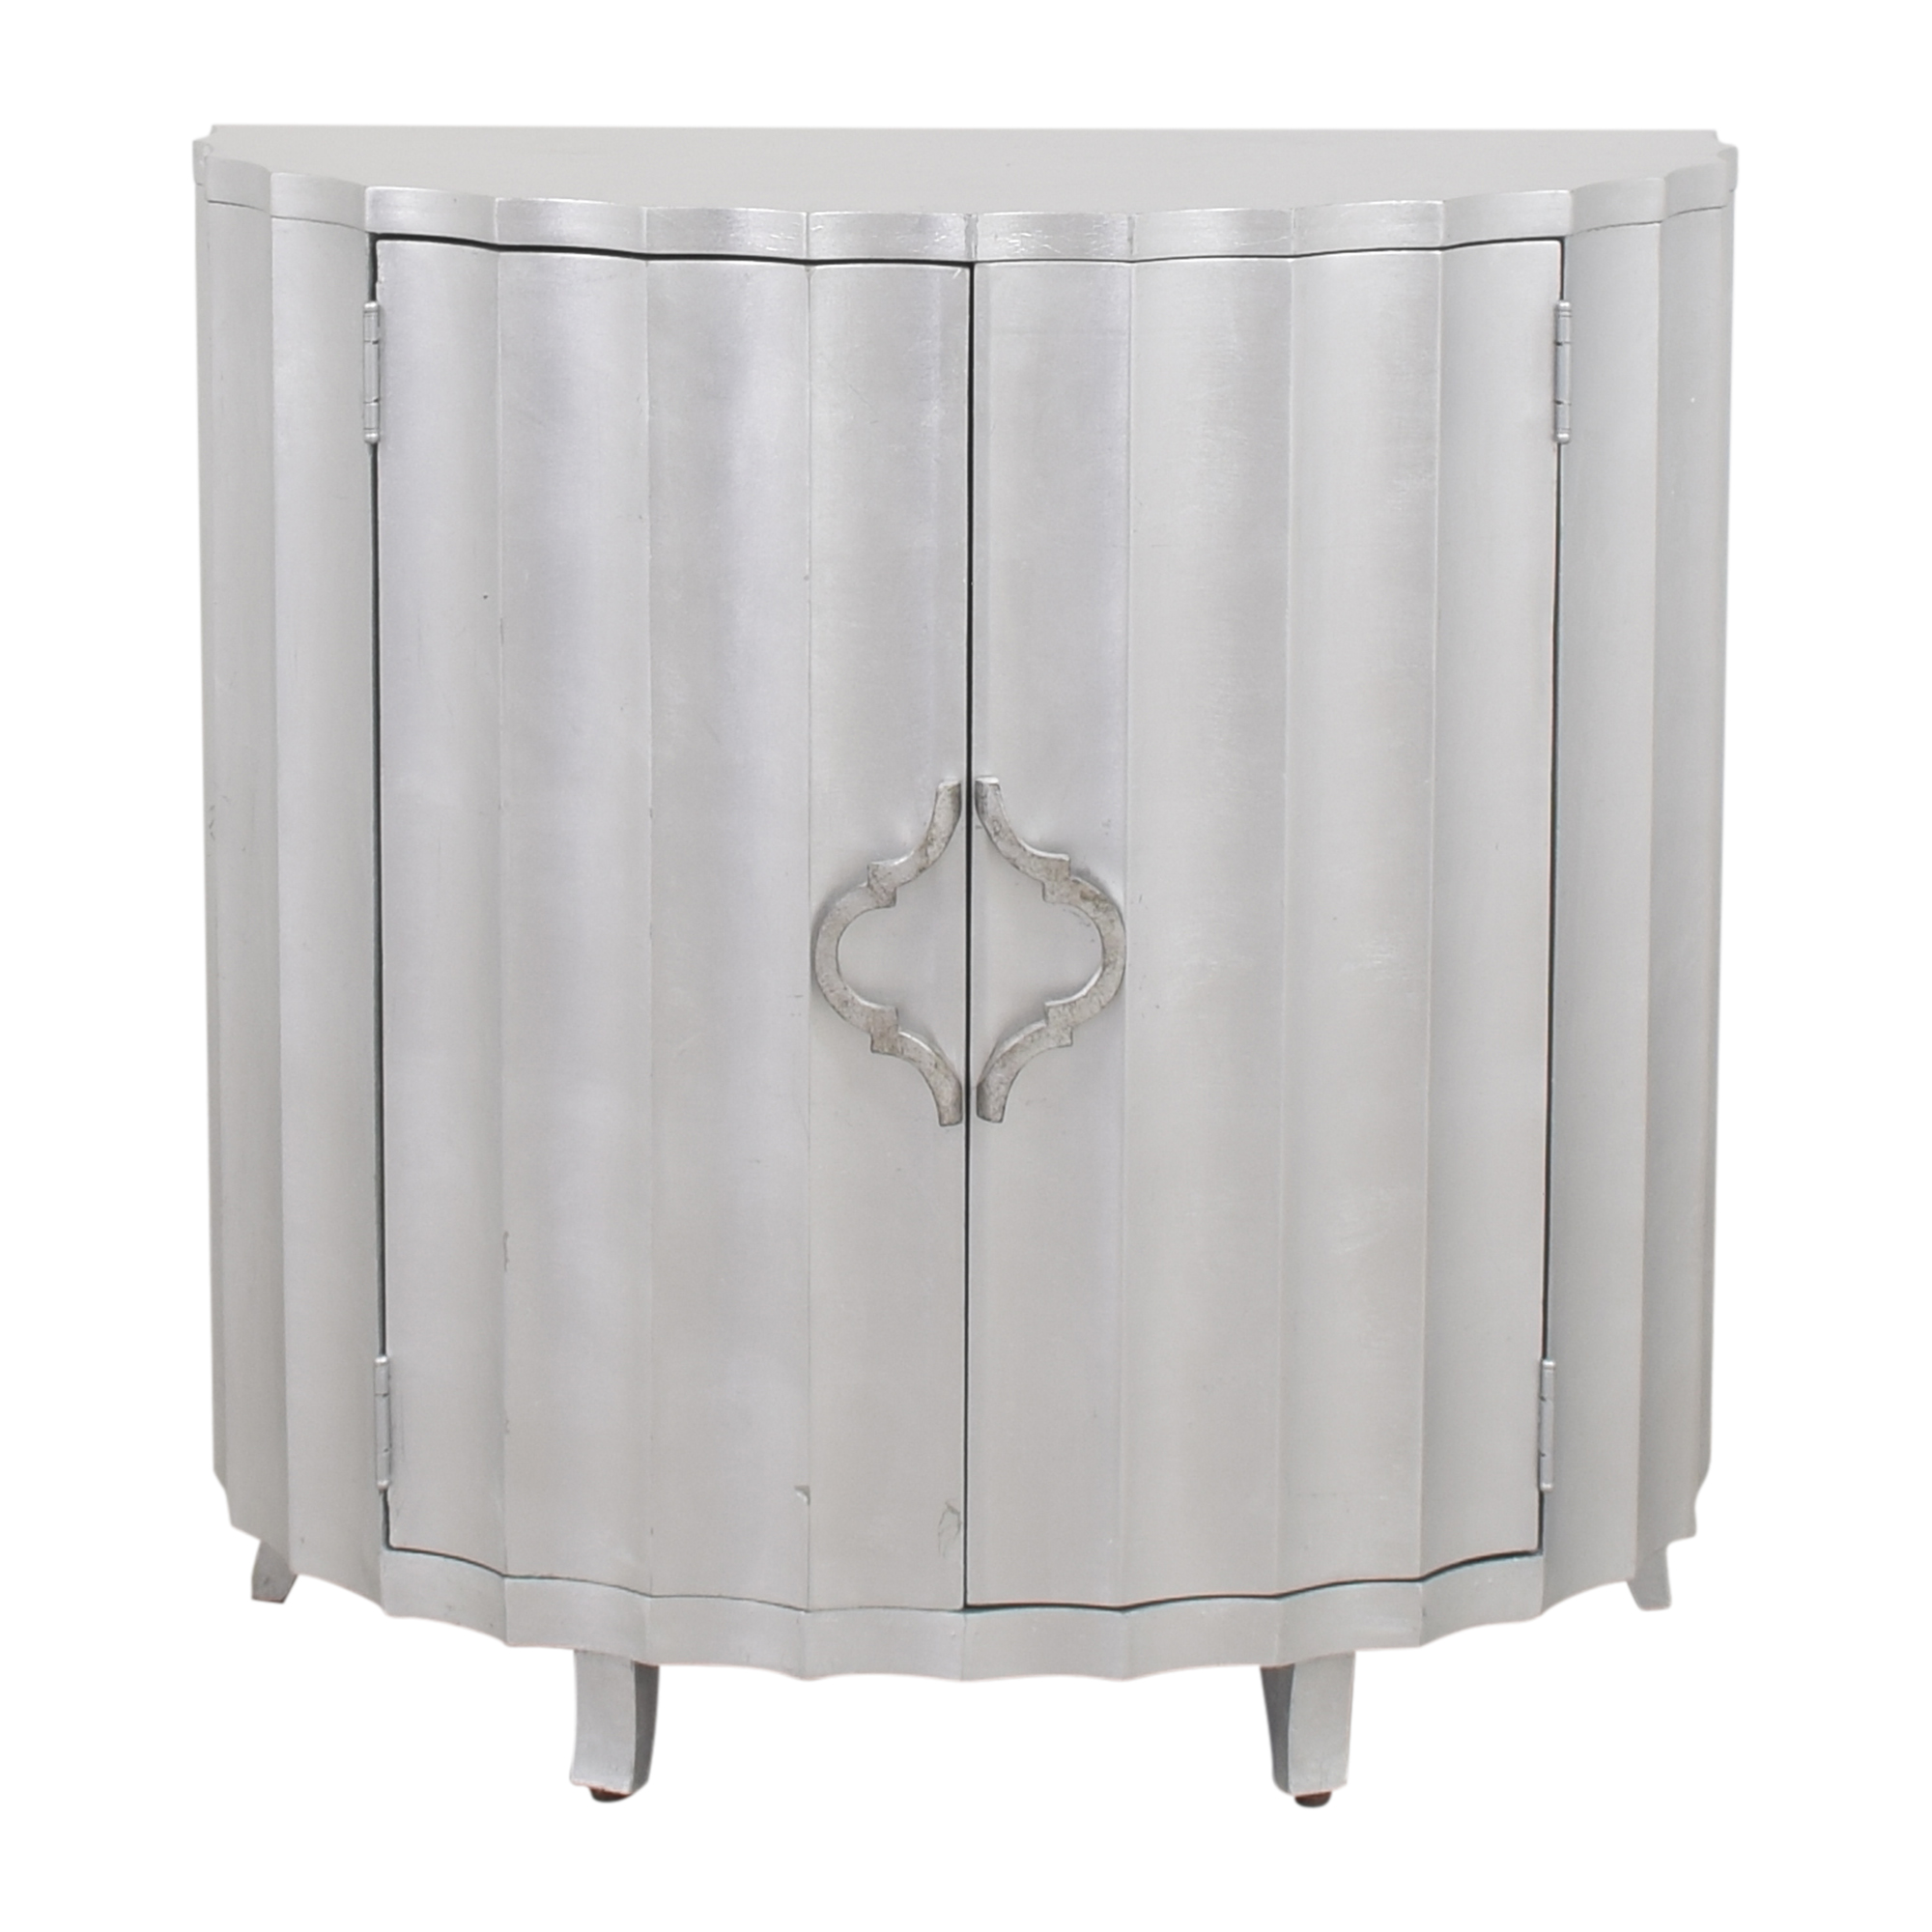 Hekman Furniture Hekman Furniture Scalloped Front Demilune Chest nj